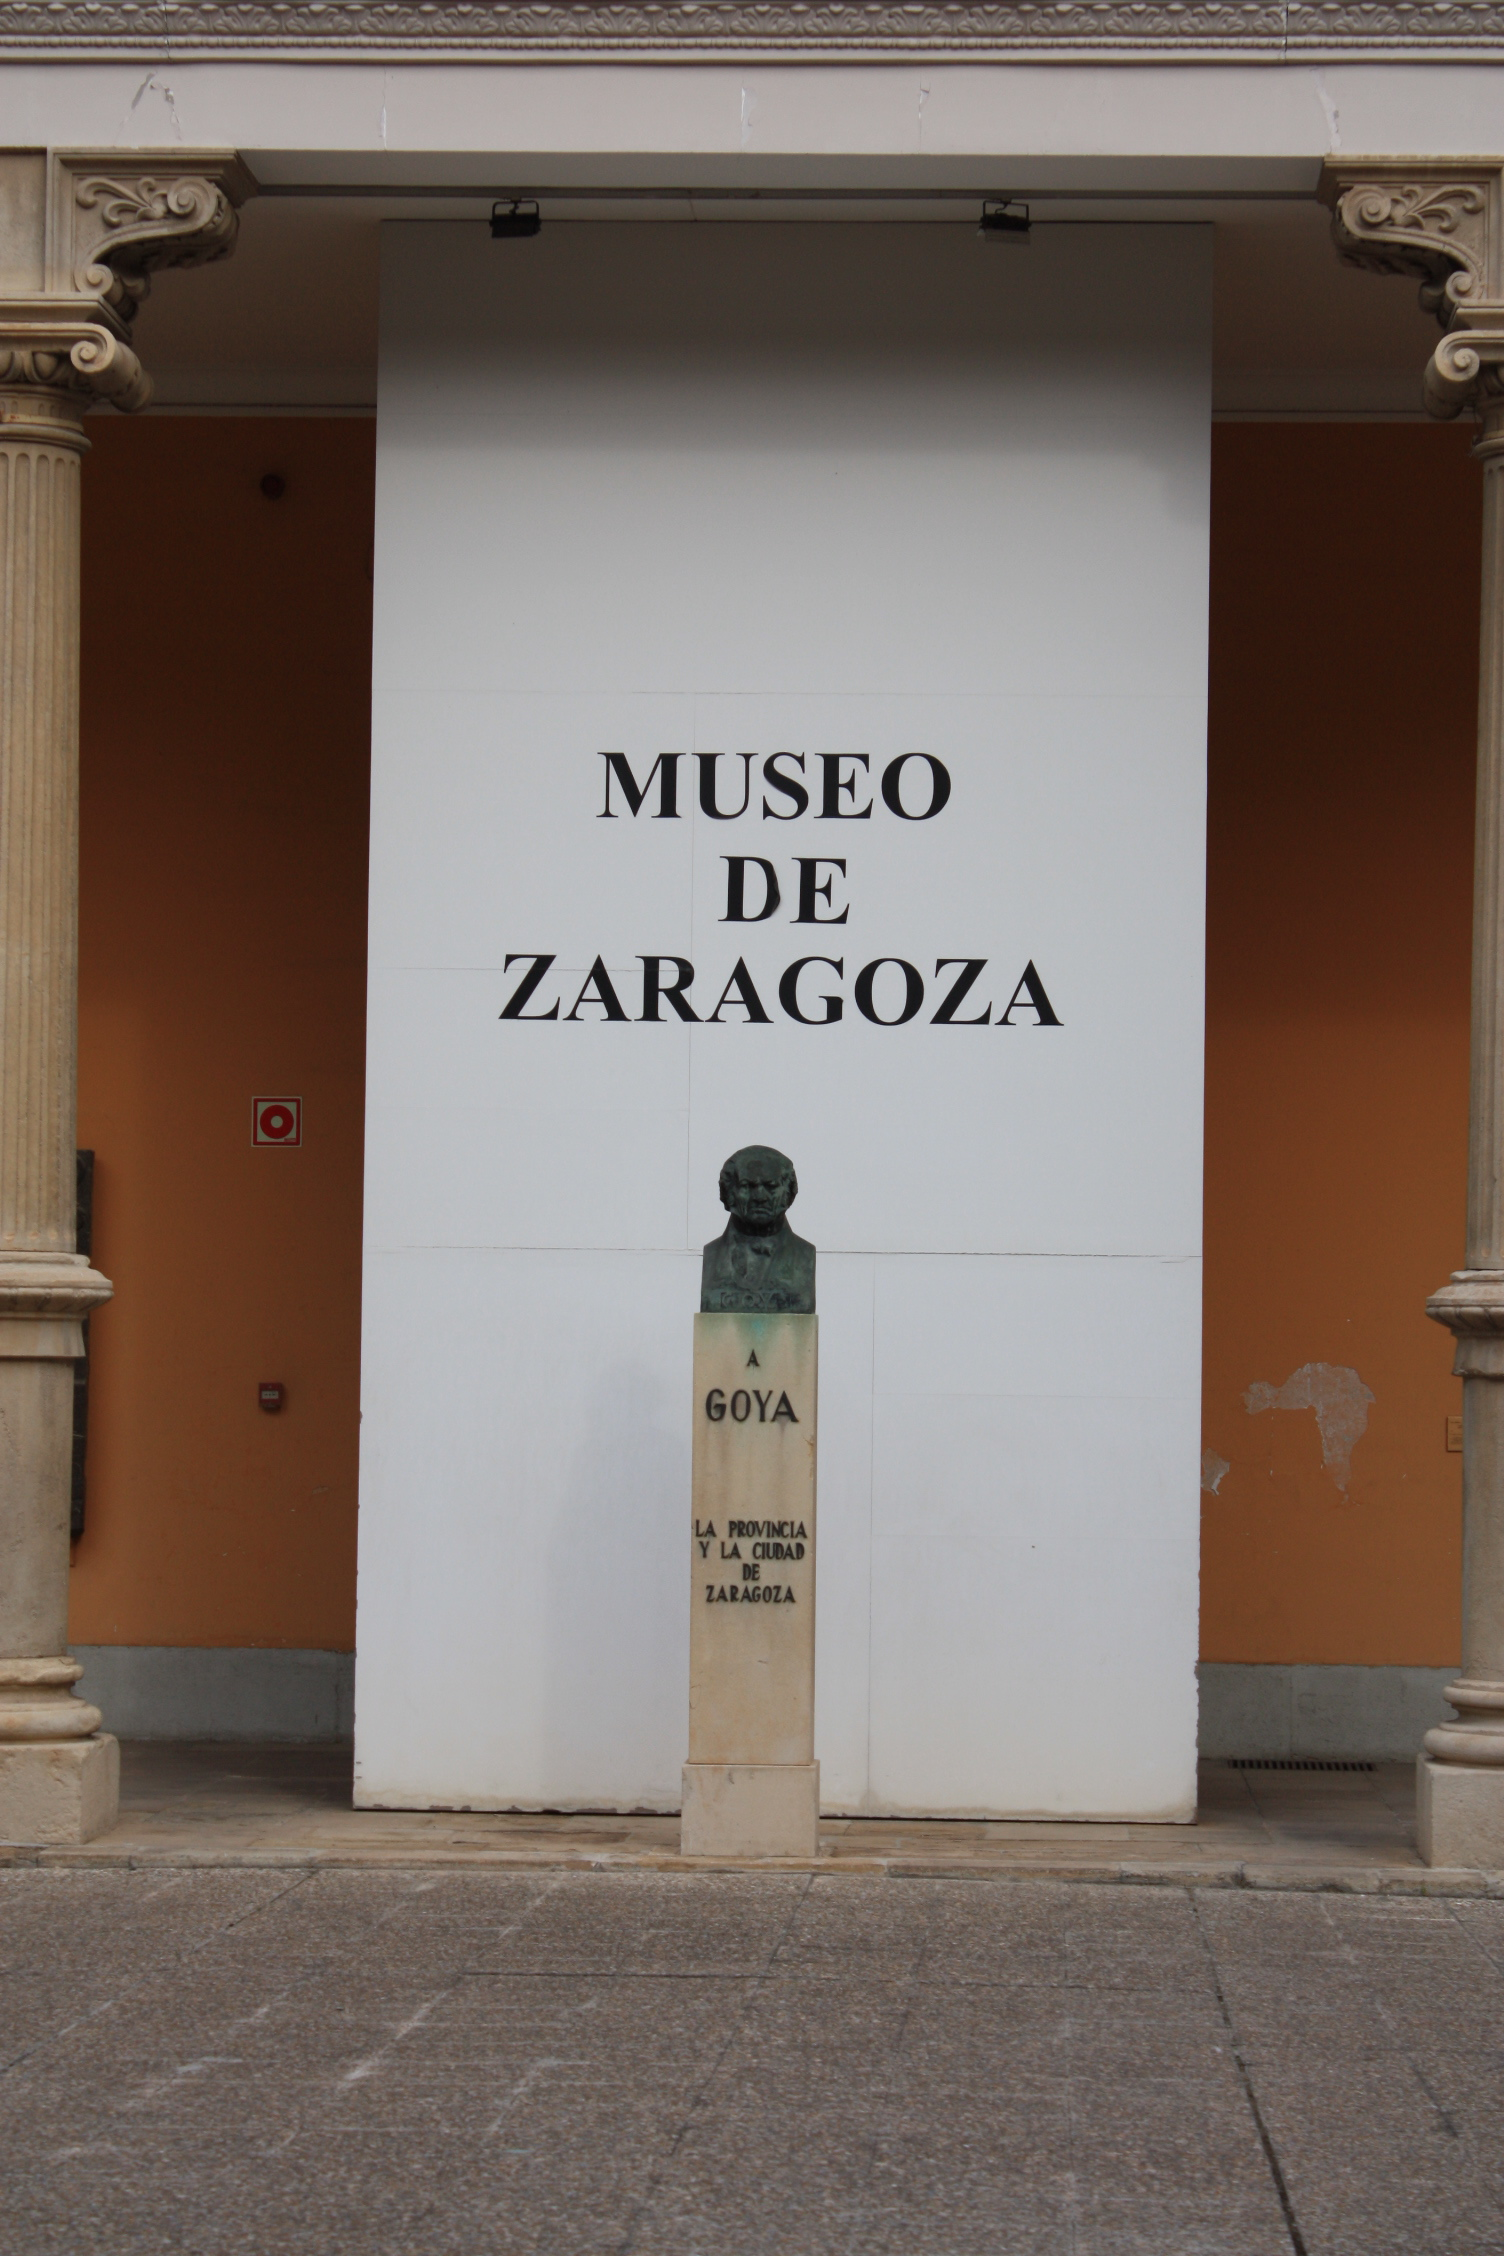 Francisdo de Goya, the famous Spanish painter who lived in Zaragoza, is honored in the Museum of his city.